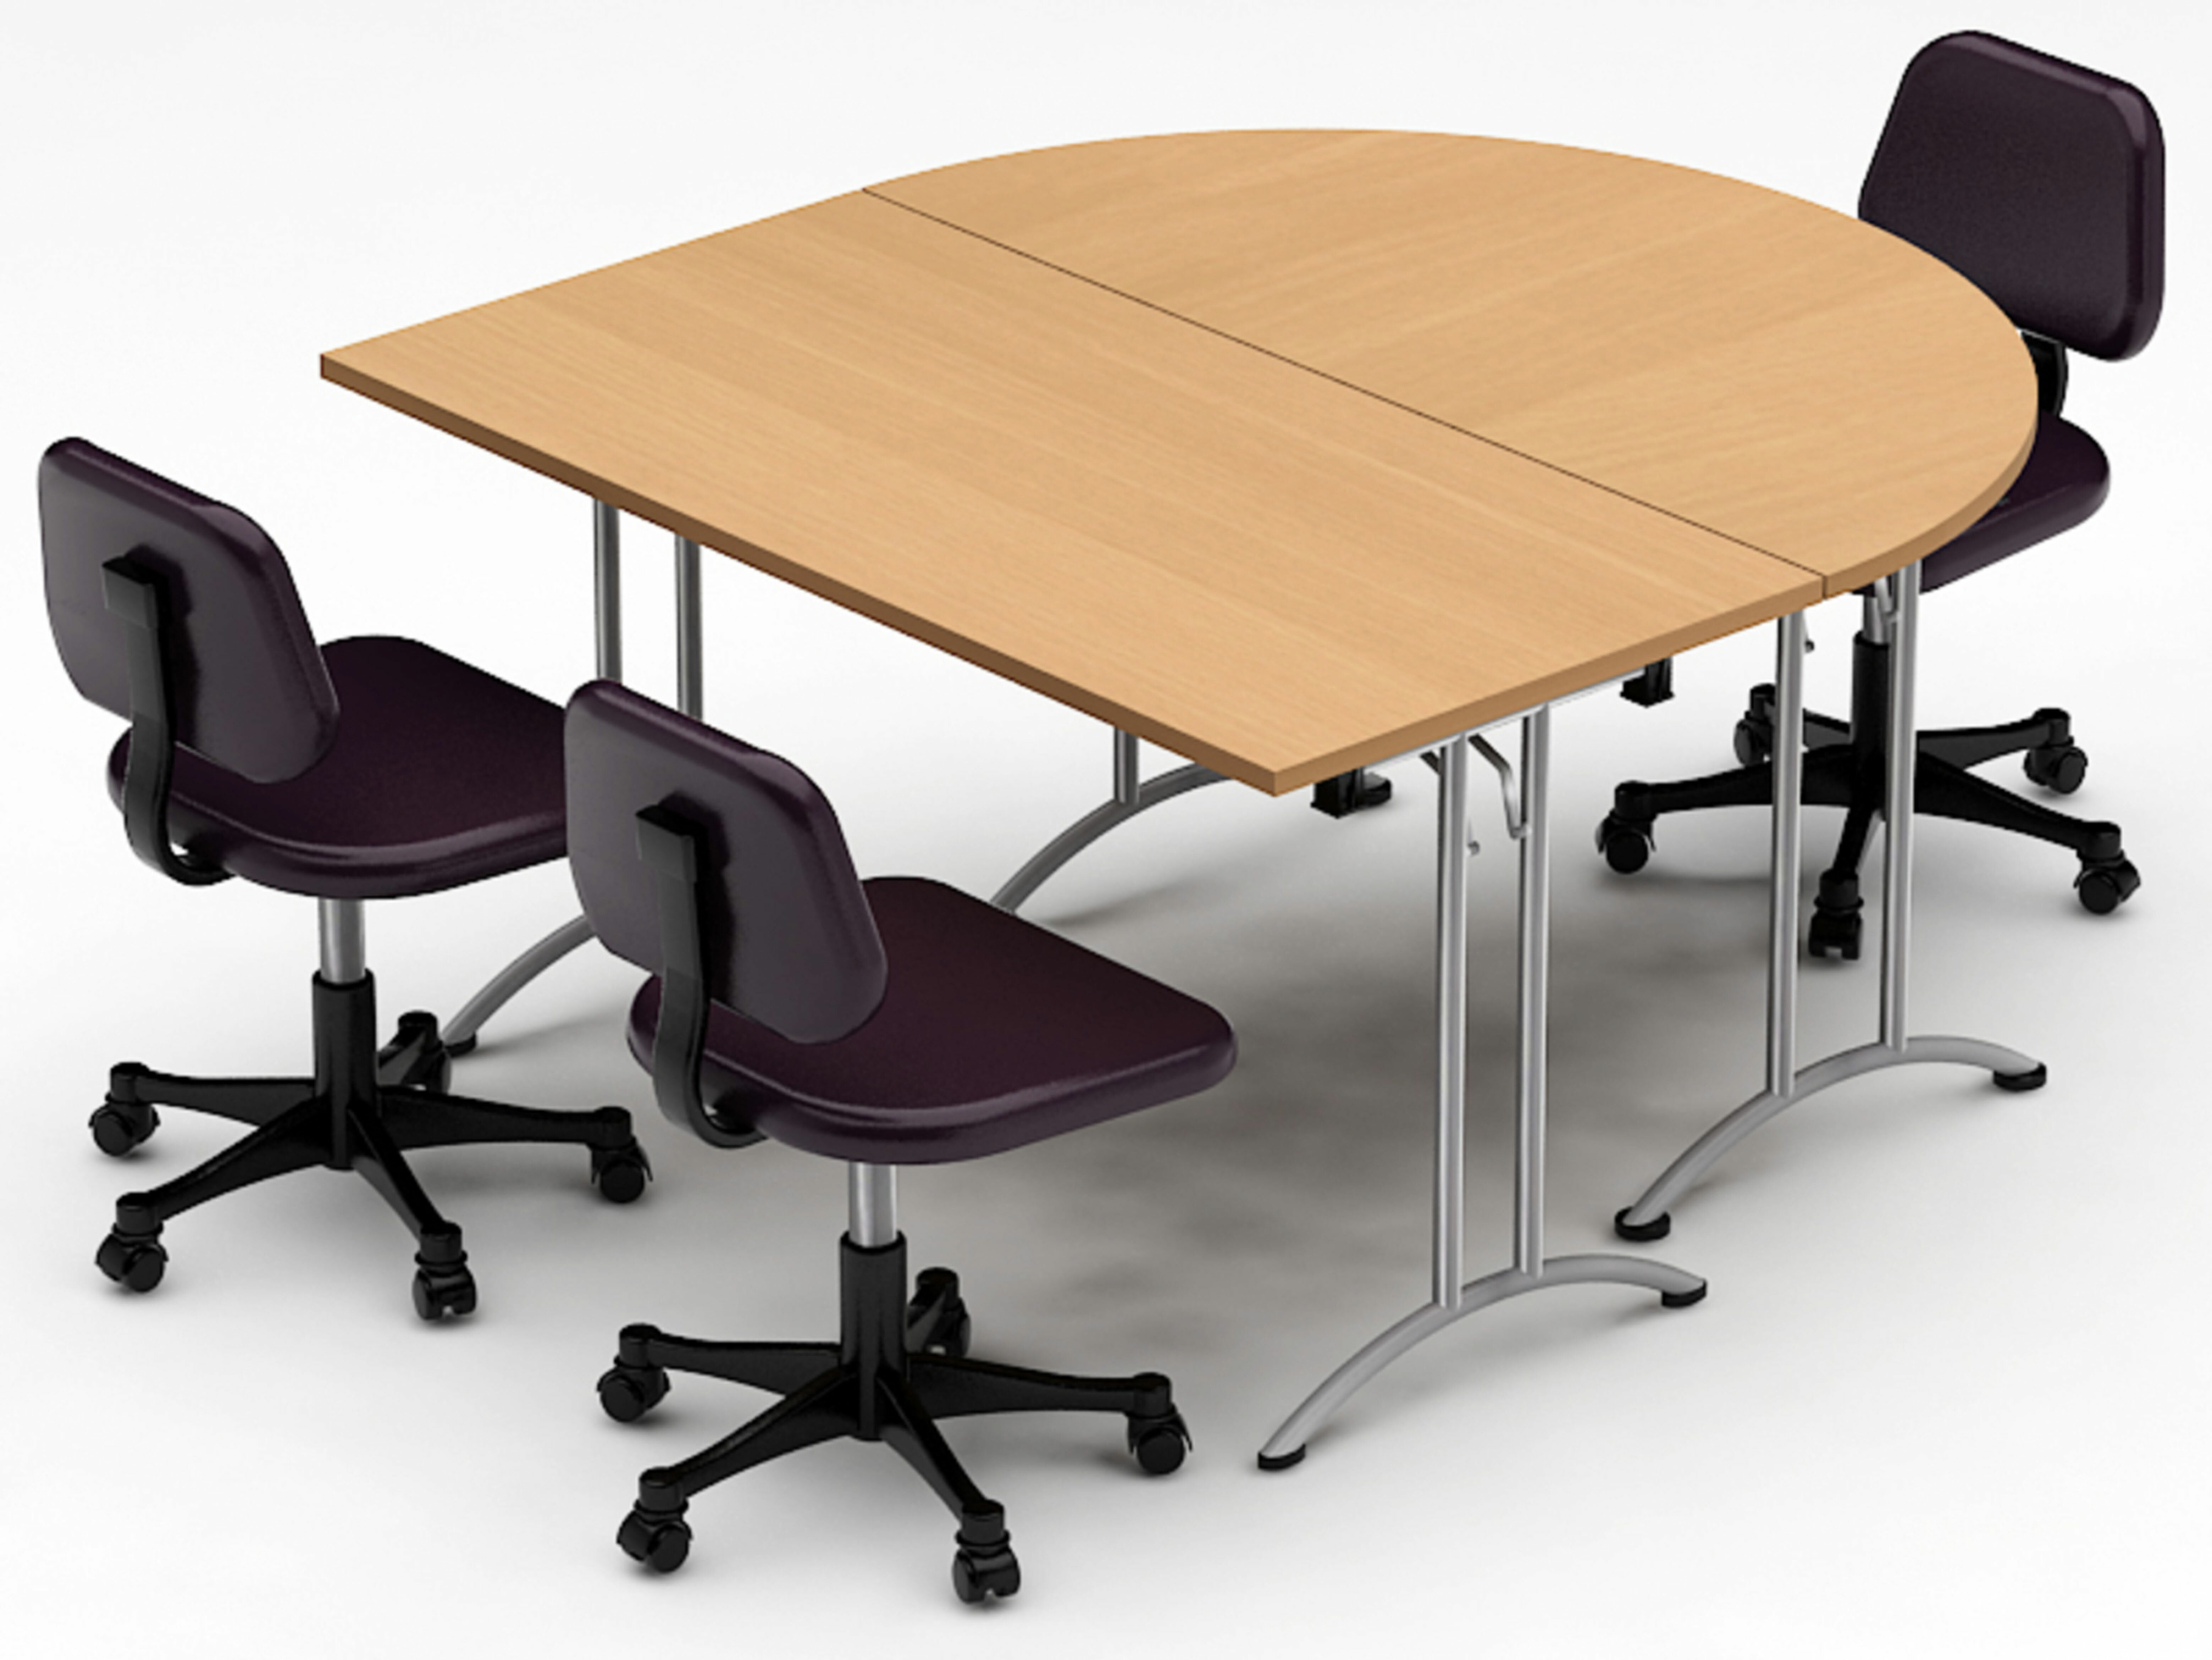 Picture of: Team Tables Meeting Seminar 2 Piece Half Round Meeting Table Wayfair